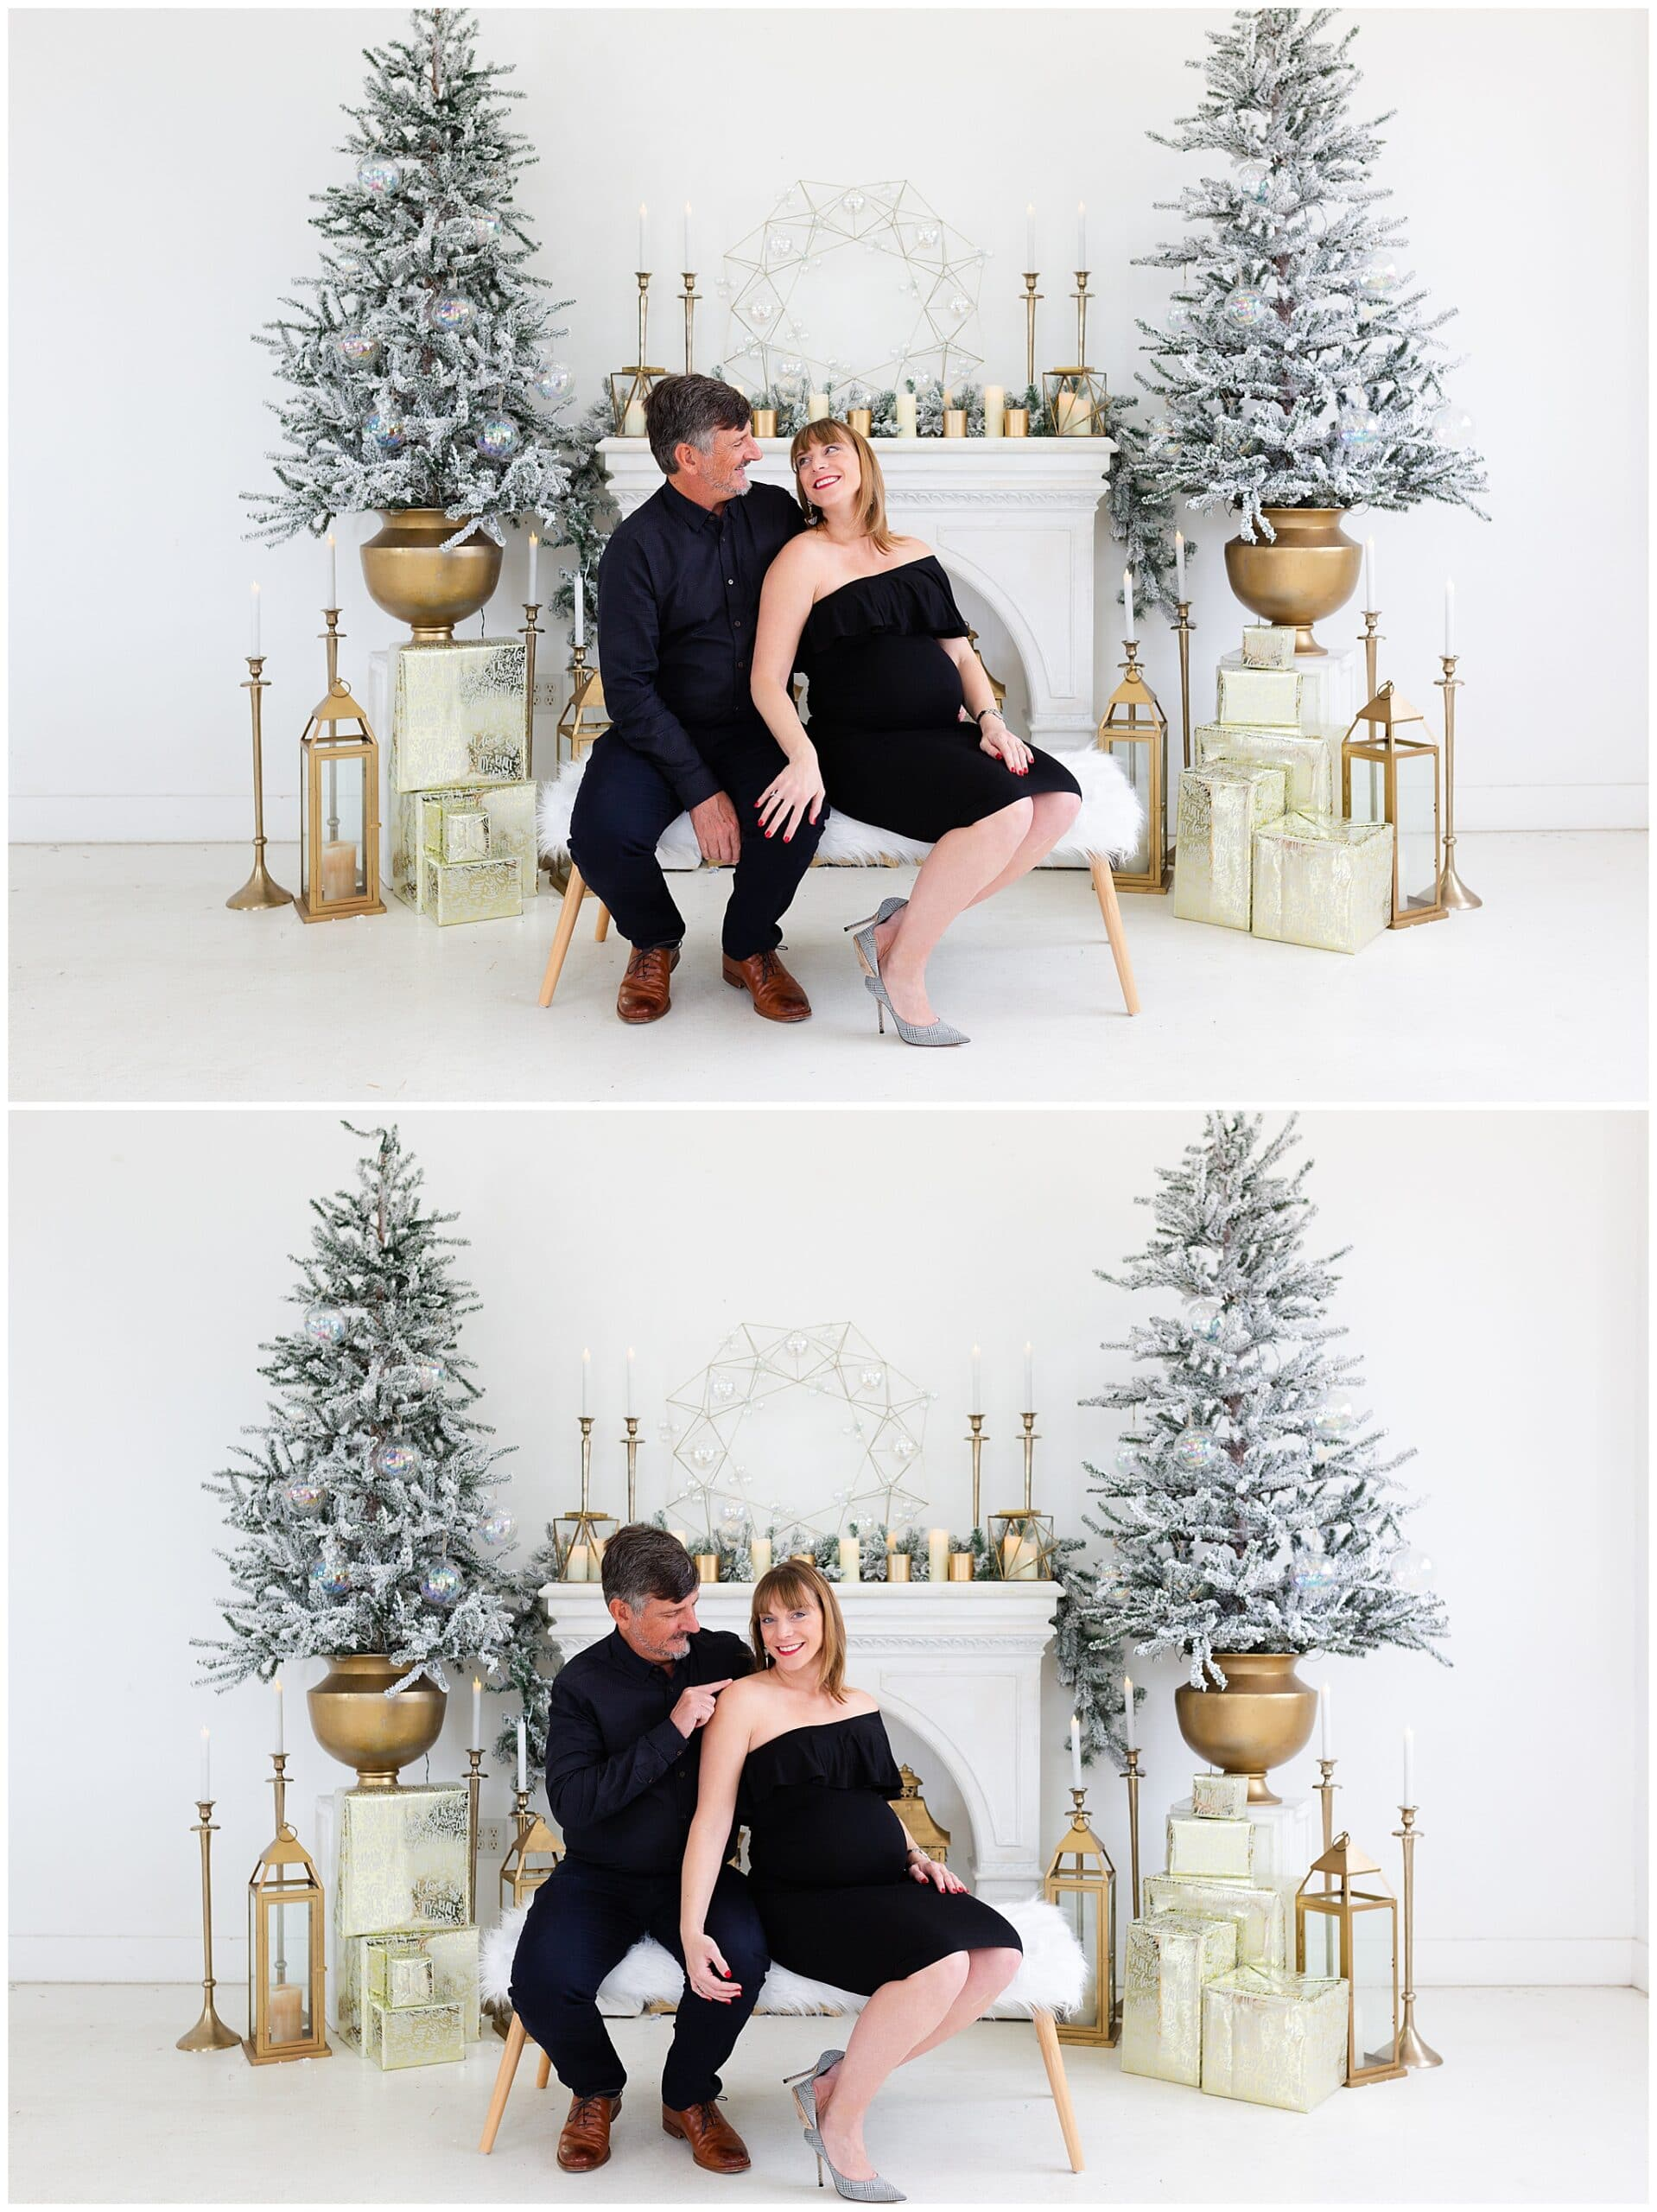 maternity portraits of a mom-to-be and husband at a Christmas portraits session at Studio HTX in Houston Texas by Swish and Click Photography